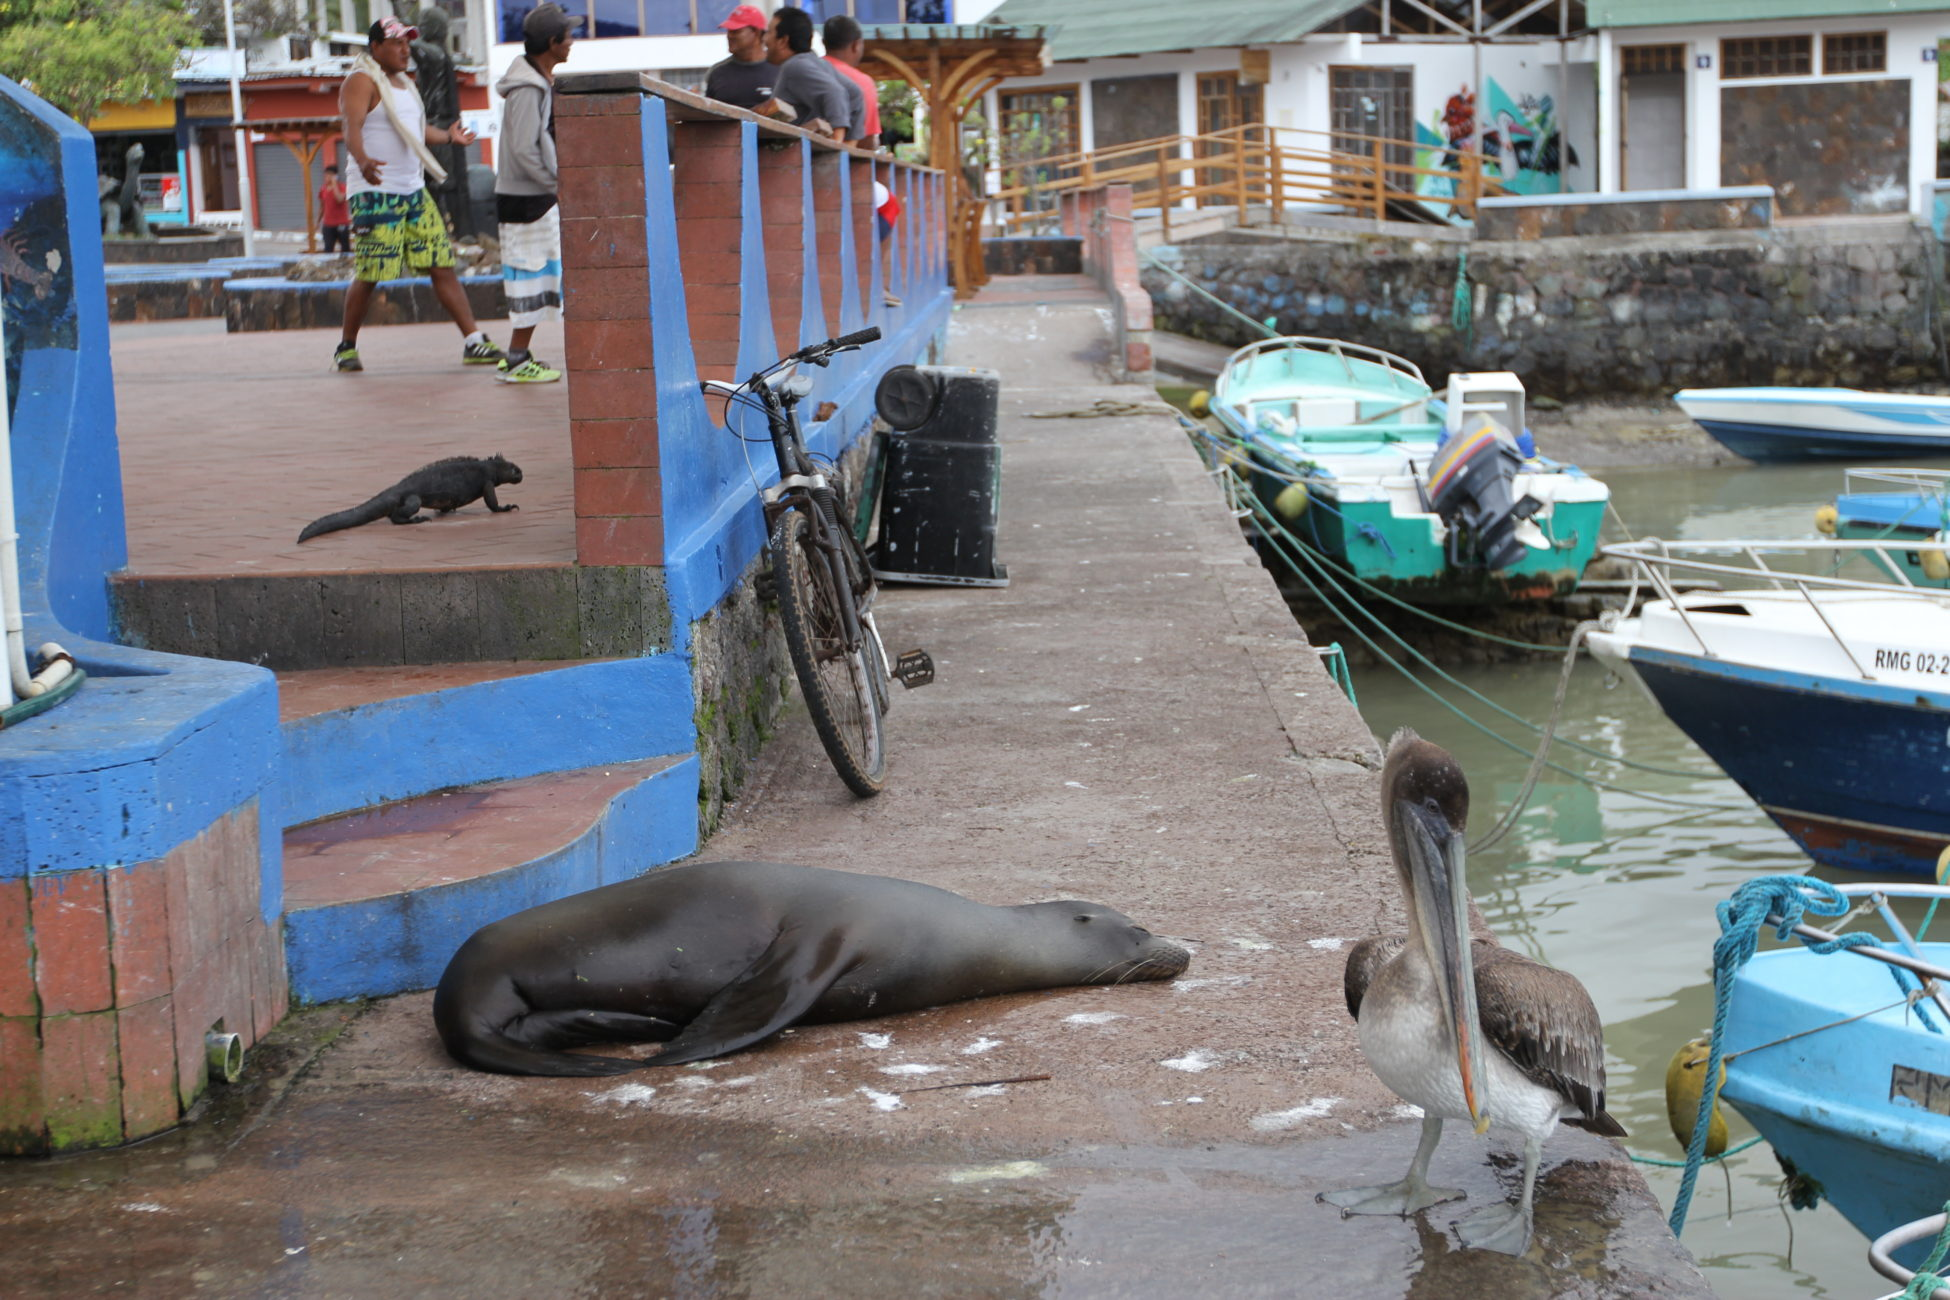 Picture of a marine iguana, blue pelican, and a Galápagos sea lion on the docks of on inlet on the Galápagos islands.